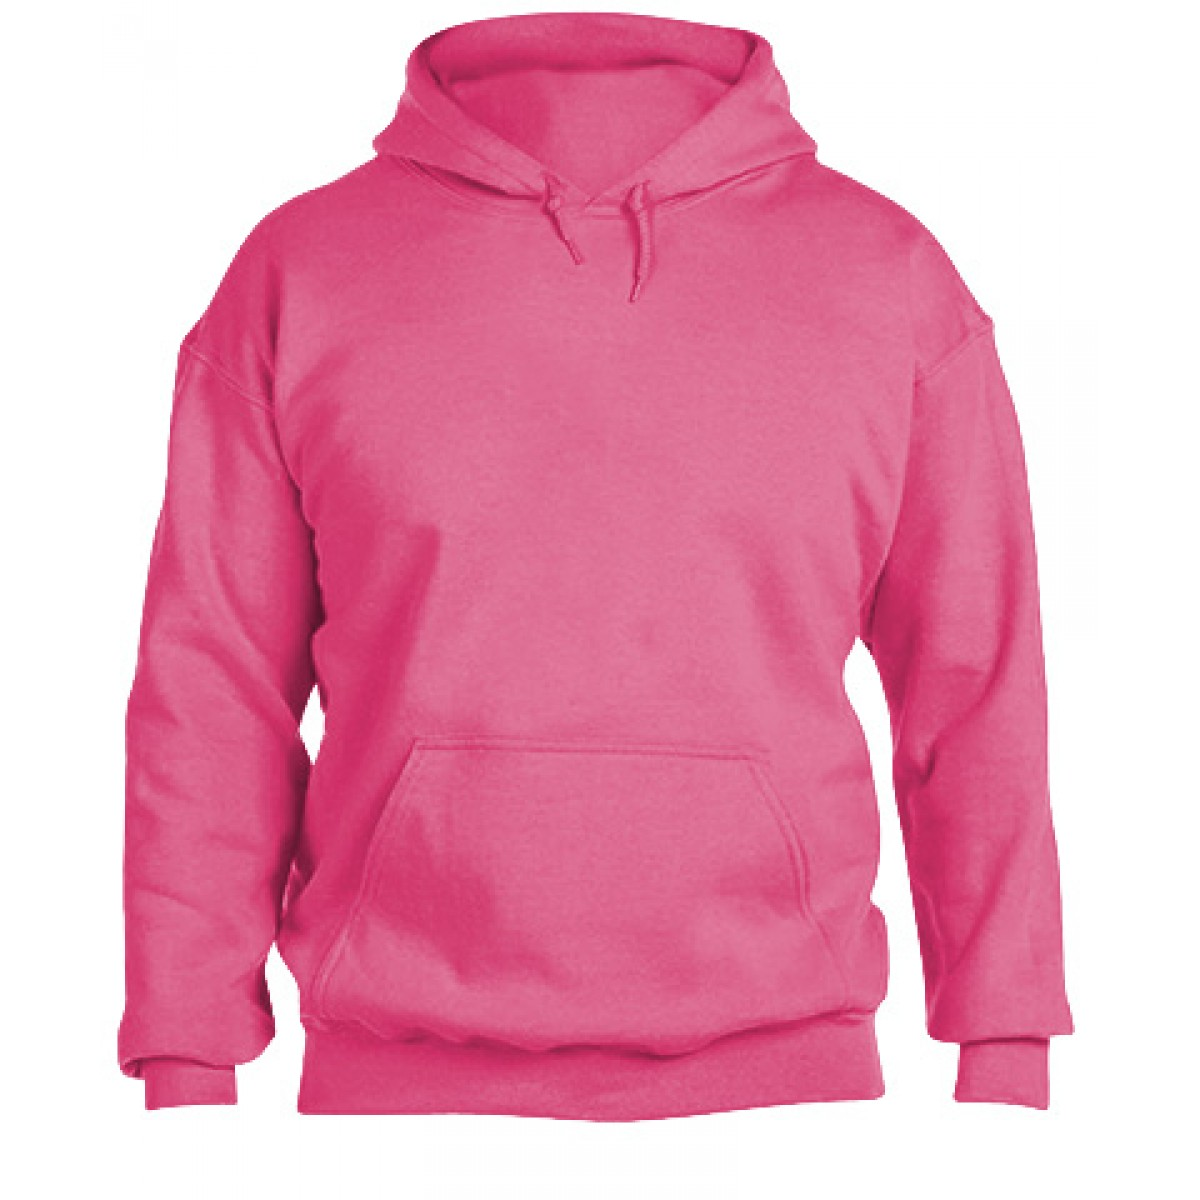 Hooded Sweatshirt 50/50 Heavy Safety Pink-Safety Pink-YS